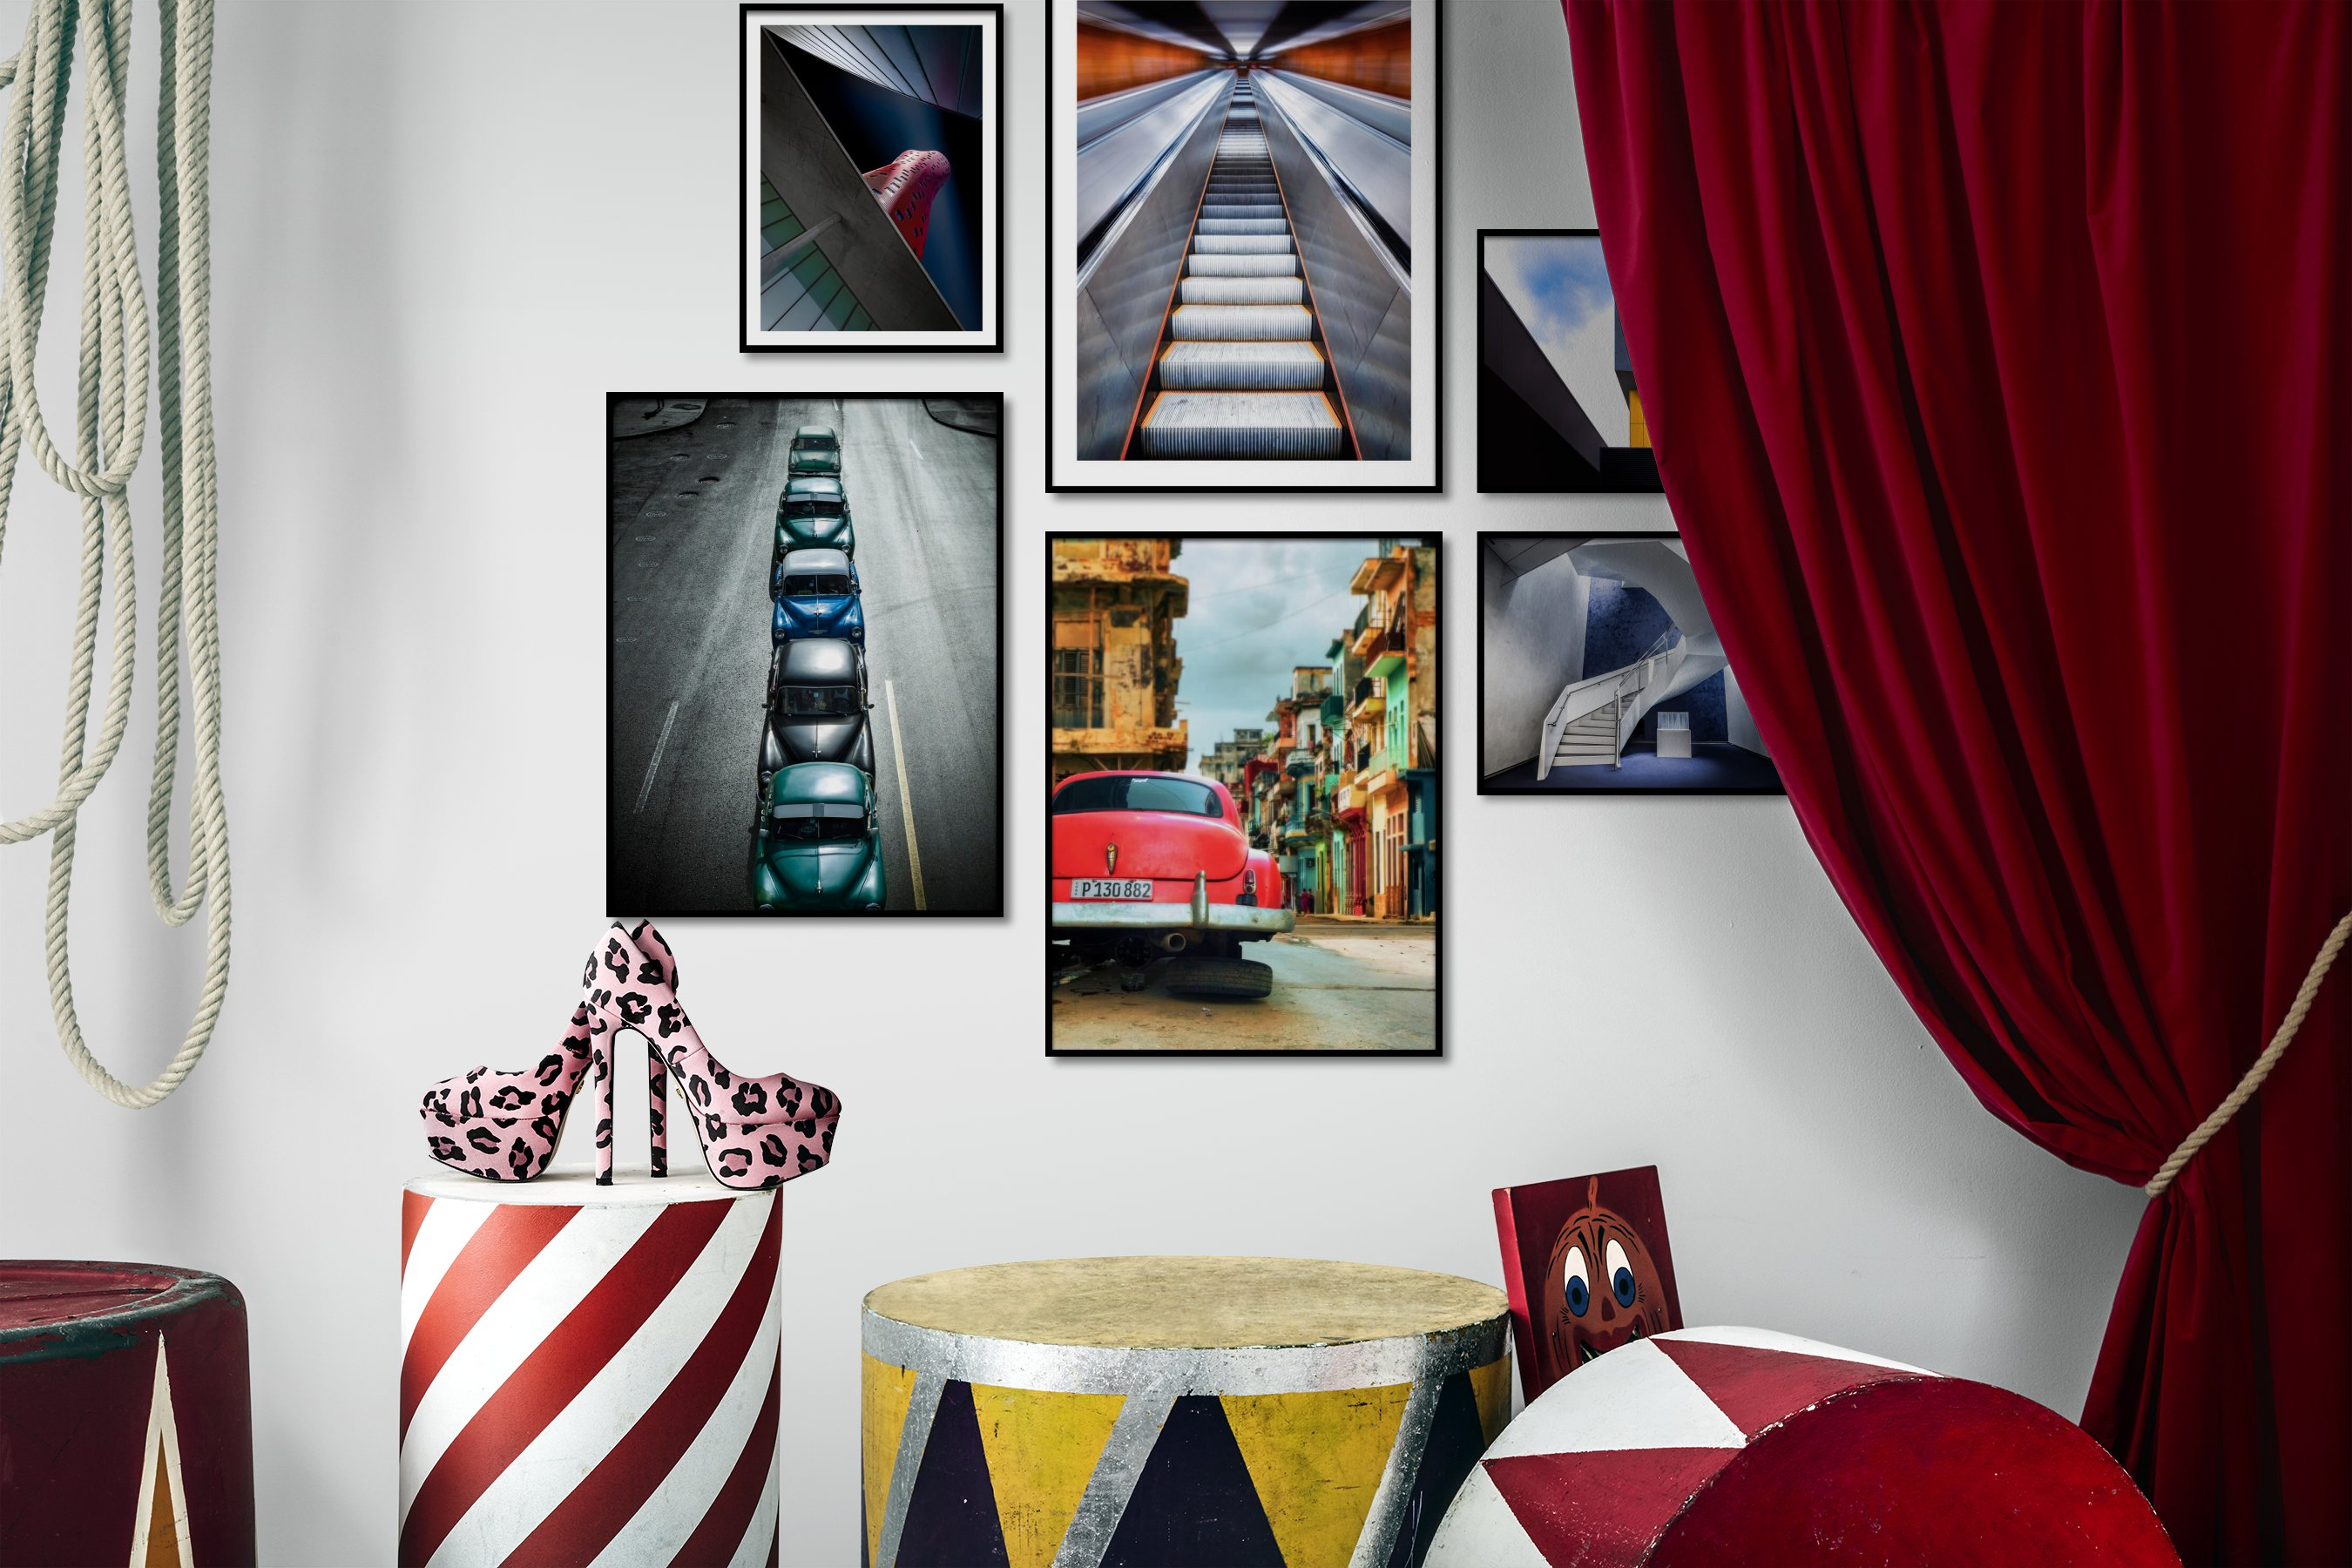 Gallery wall idea with six framed pictures arranged on a wall depicting For the Moderate, City Life, and Vintage